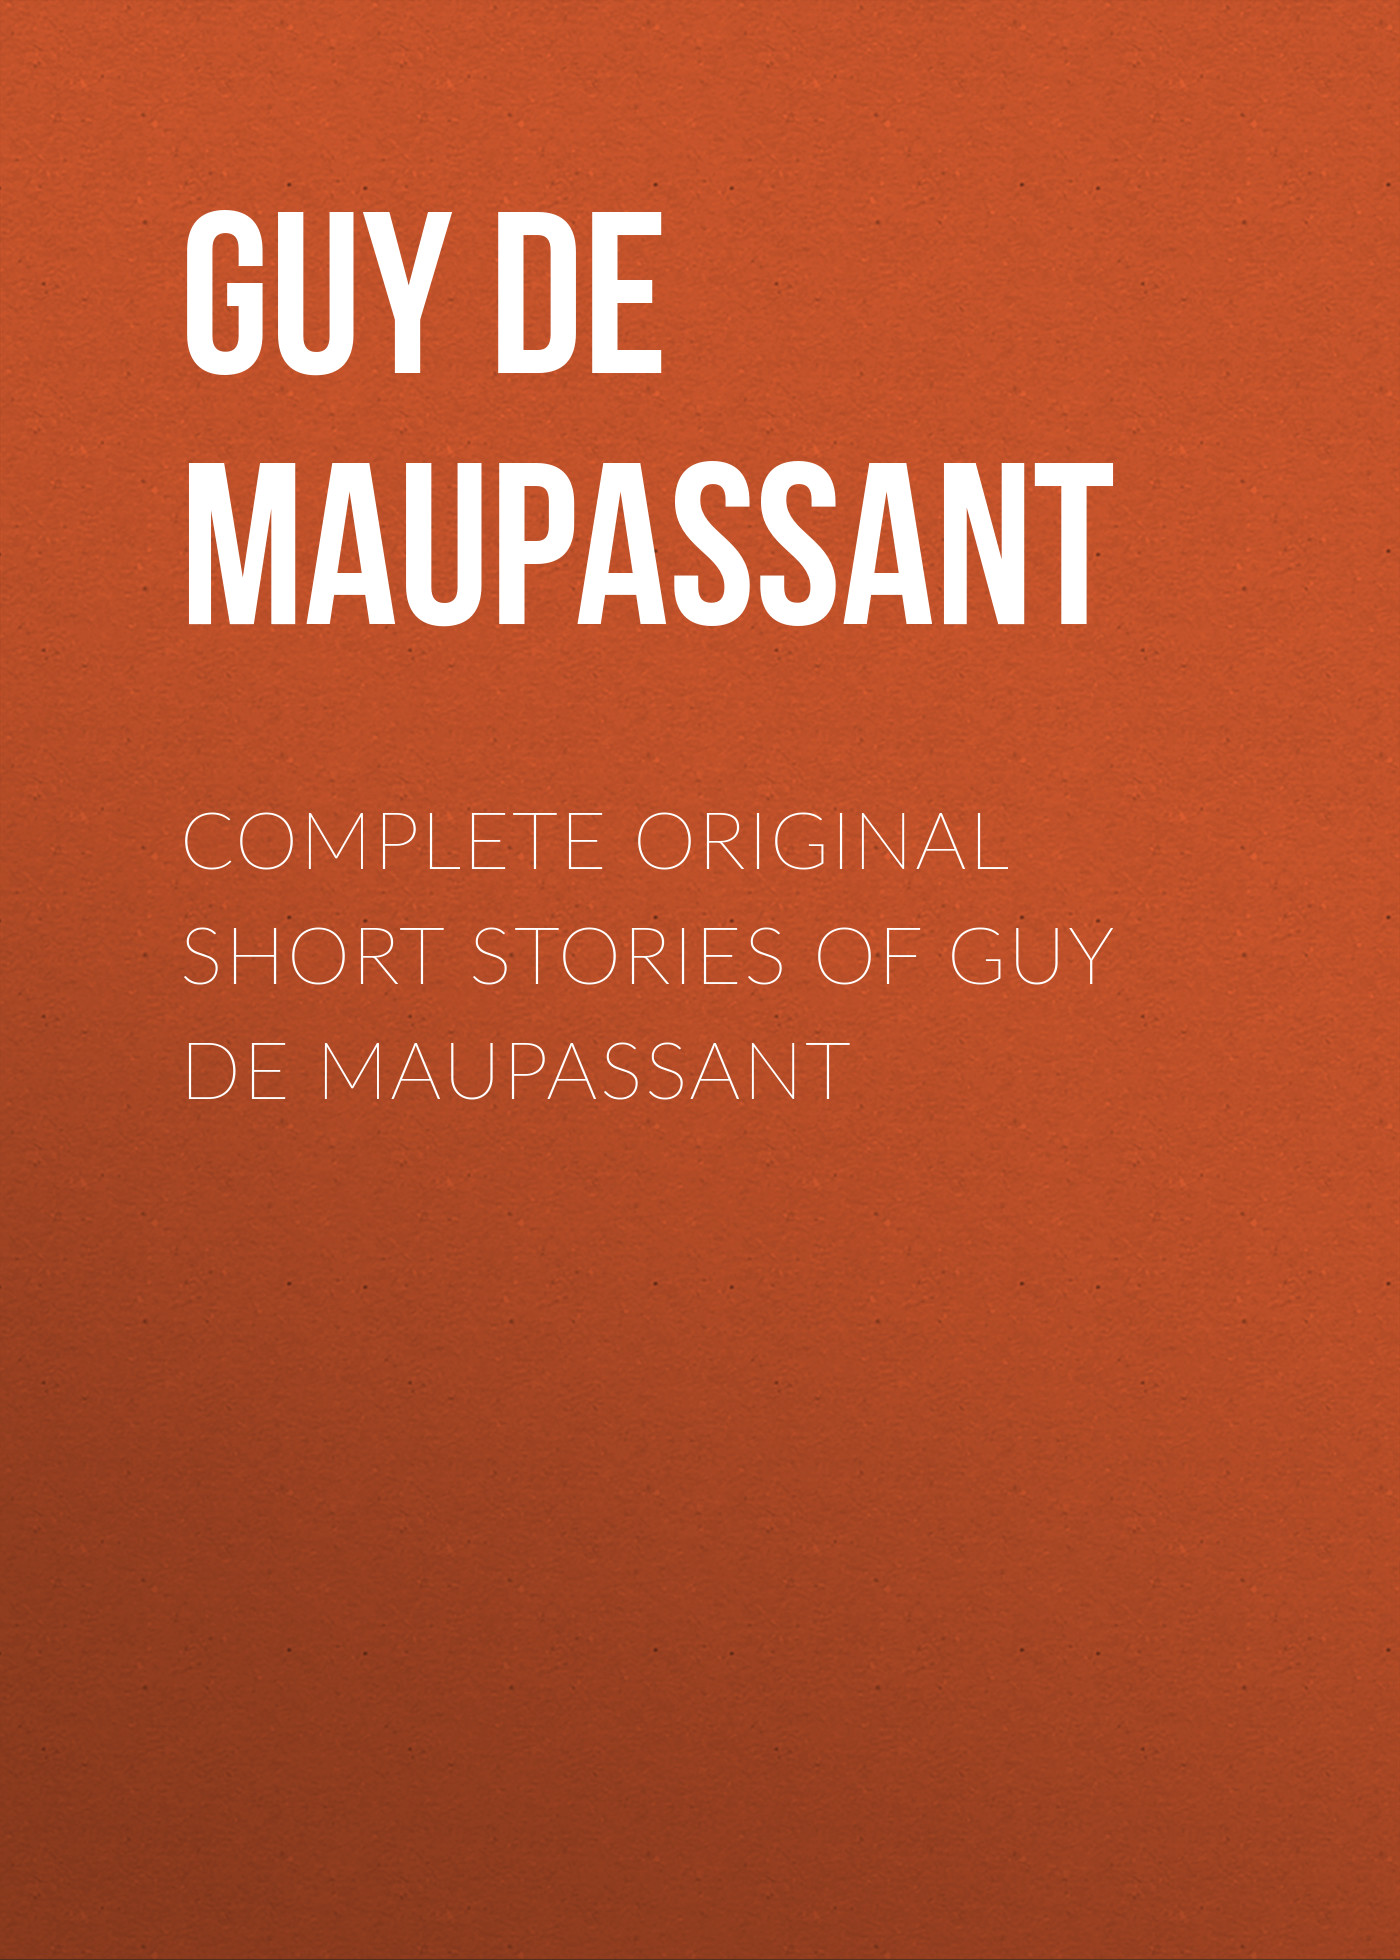 Ги де Мопассан Complete Original Short Stories of Guy De Maupassant ги де мопассан oeuvres complètes de guy de maupassant volume 05